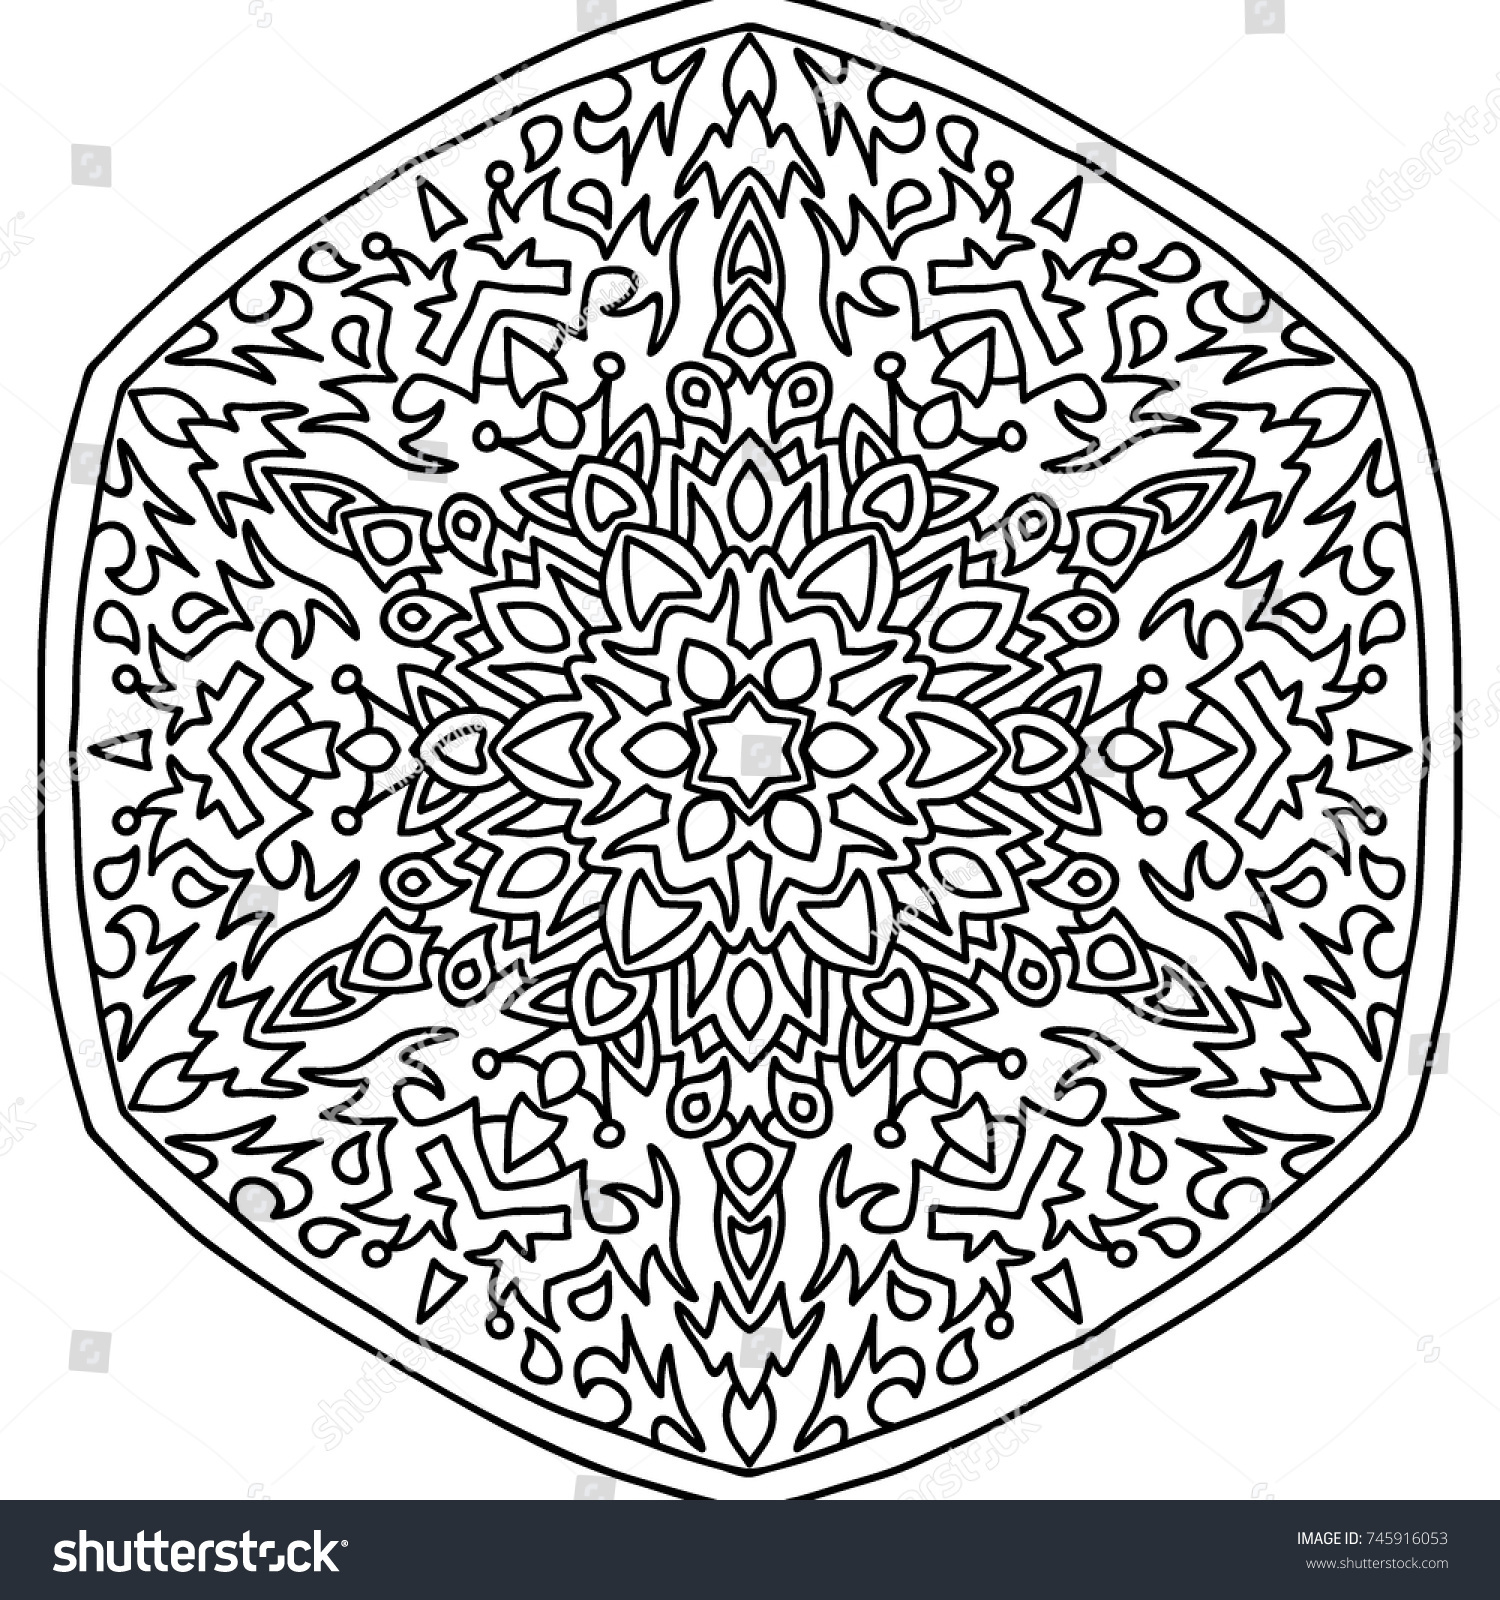 delicate snowflake adult coloring book page with flourish detailed ...